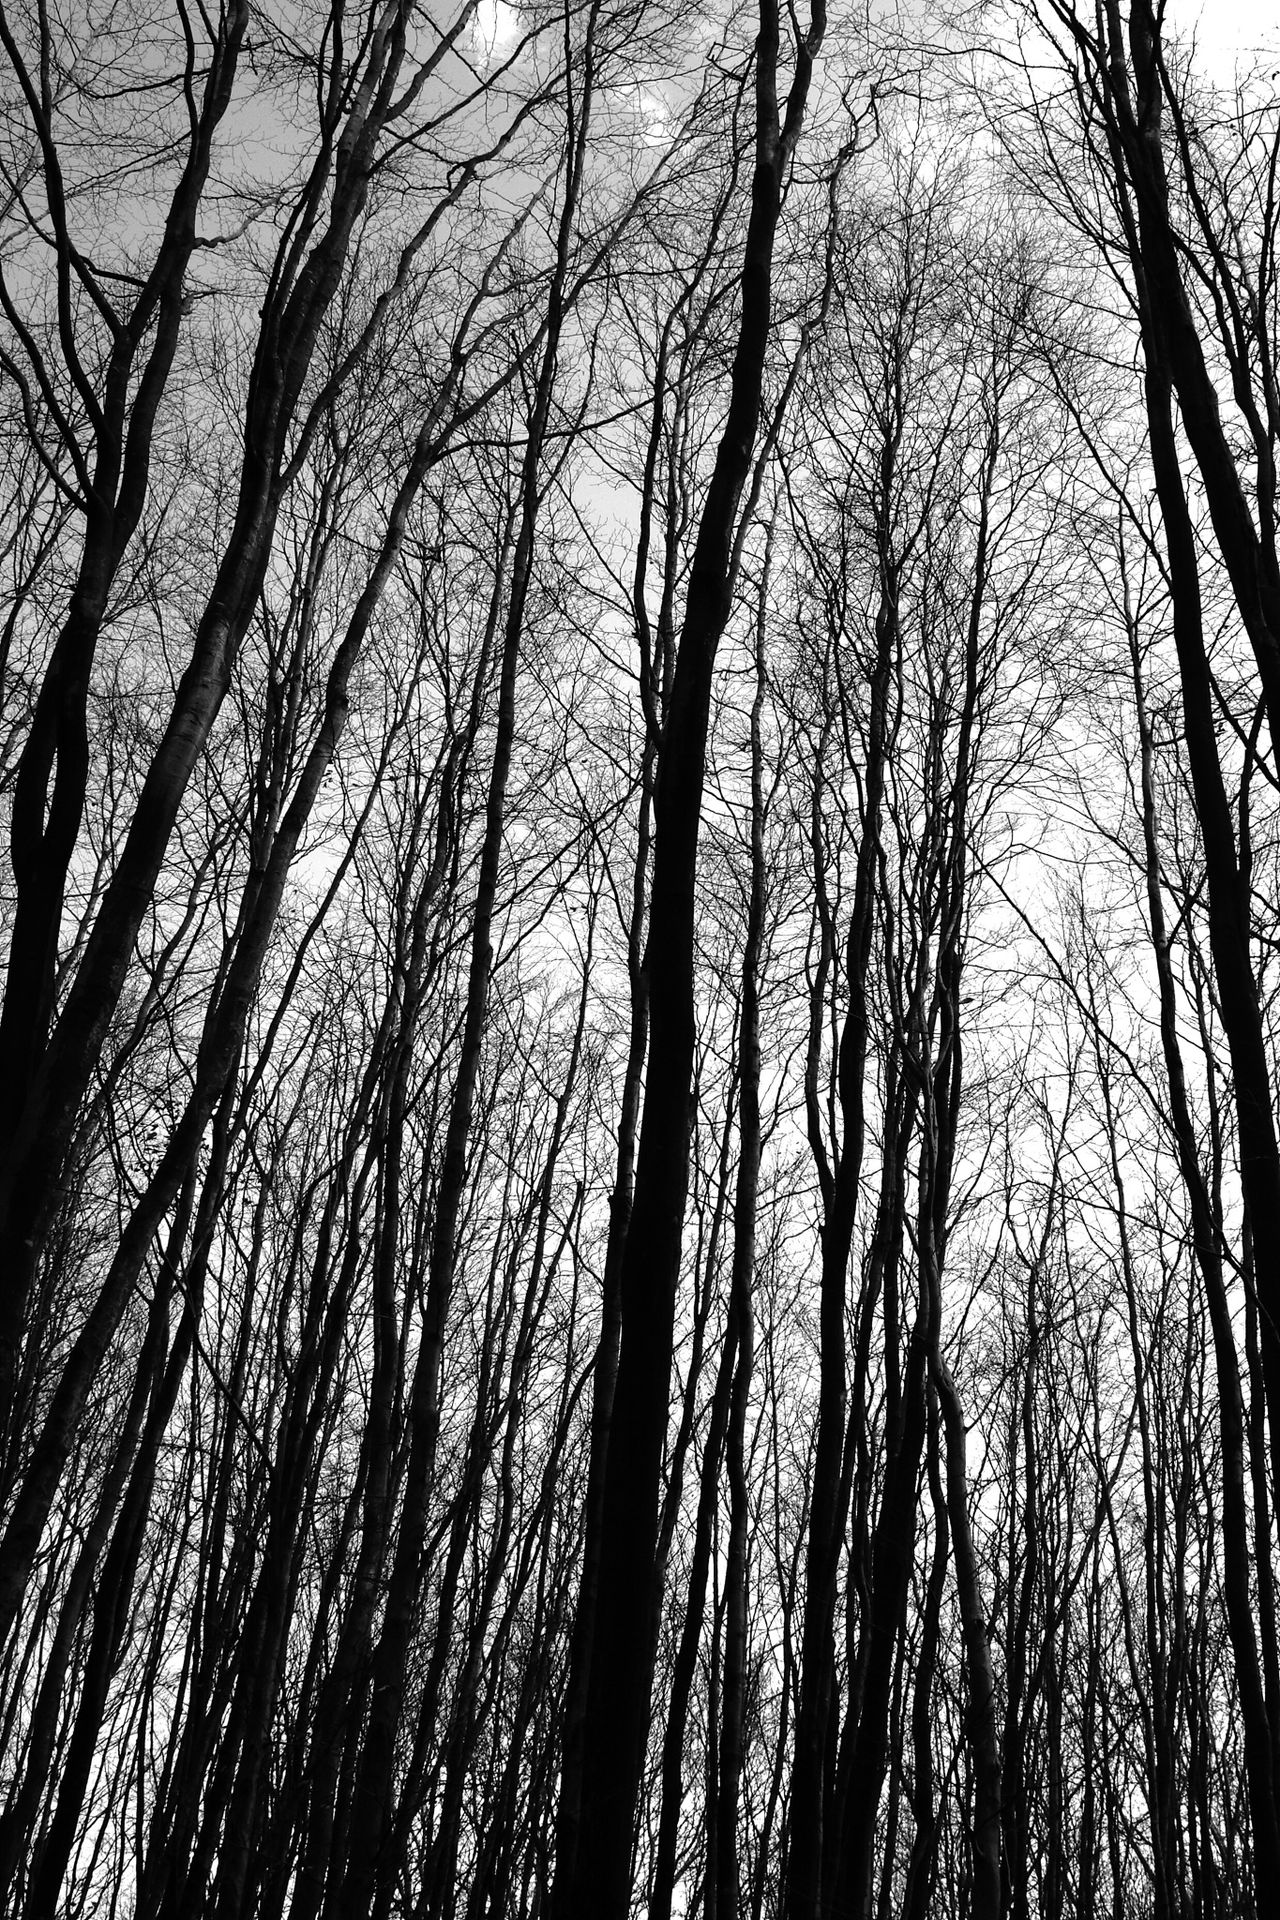 Forrest Forrest Photography Forrest Nature Trees Taking Photos Relaxing Canon 40D Blackandwhite Taking Pictures Landscape_Collection Landscapes Landscape_photography